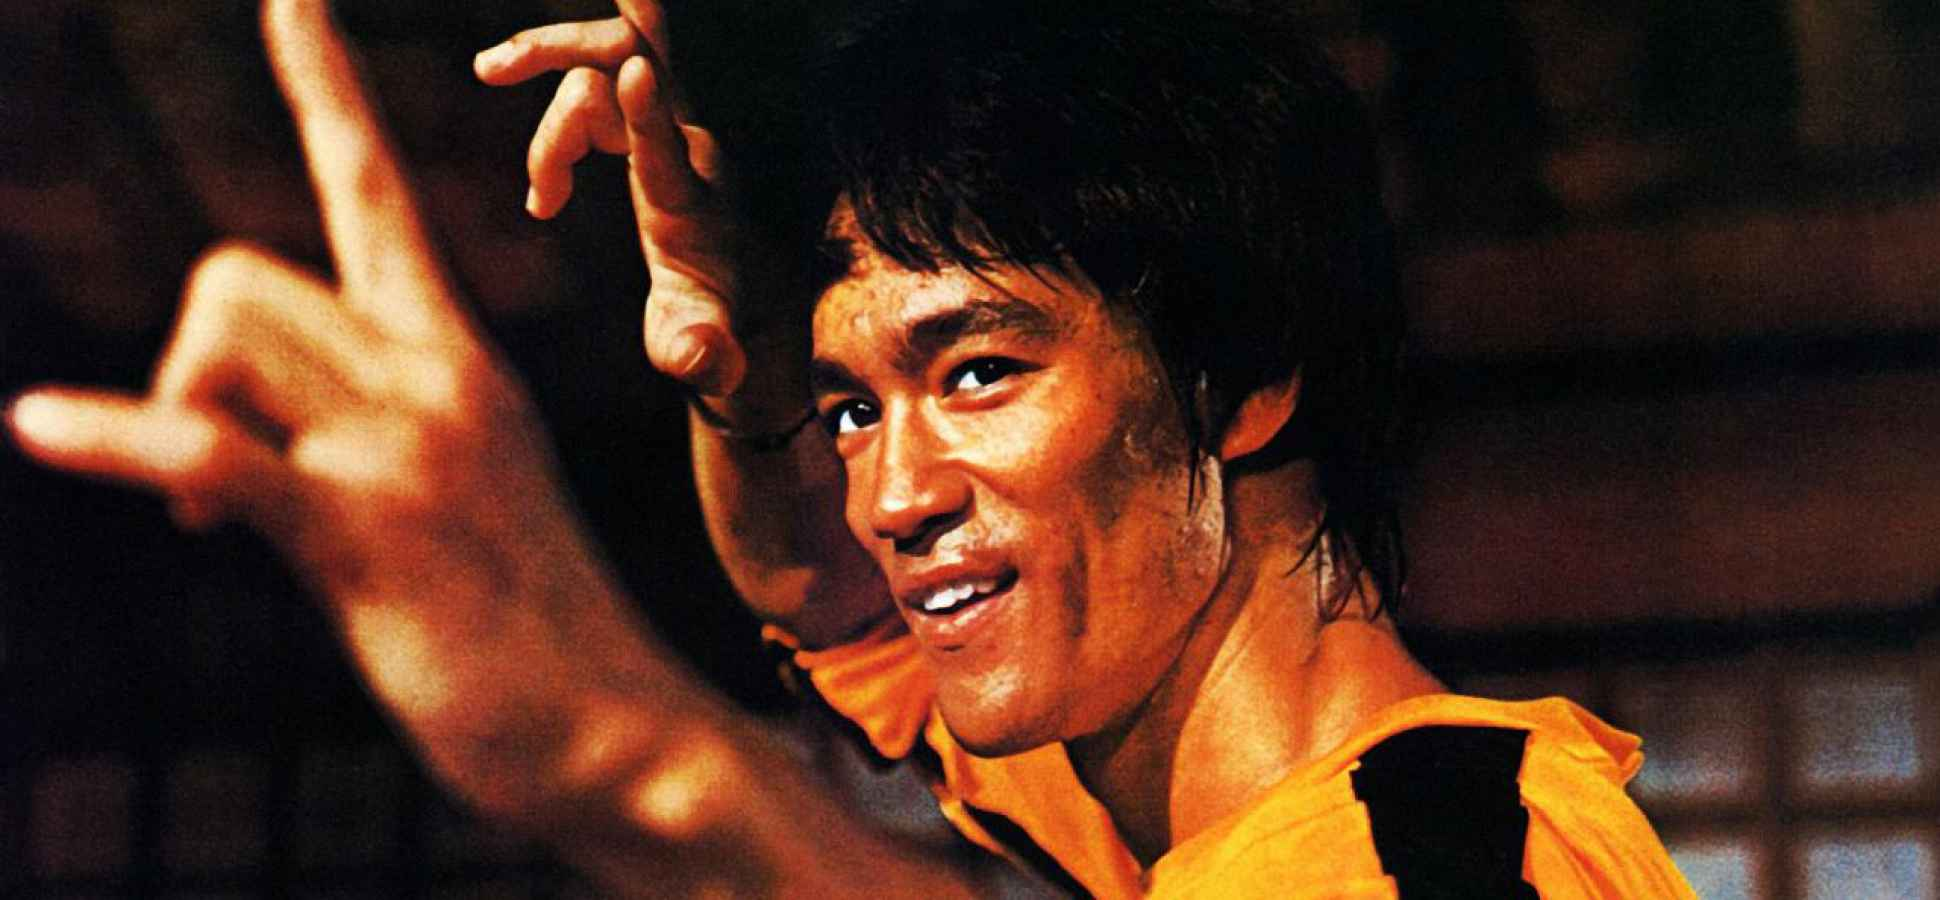 Bruce Lee grasped that practice makes perfect